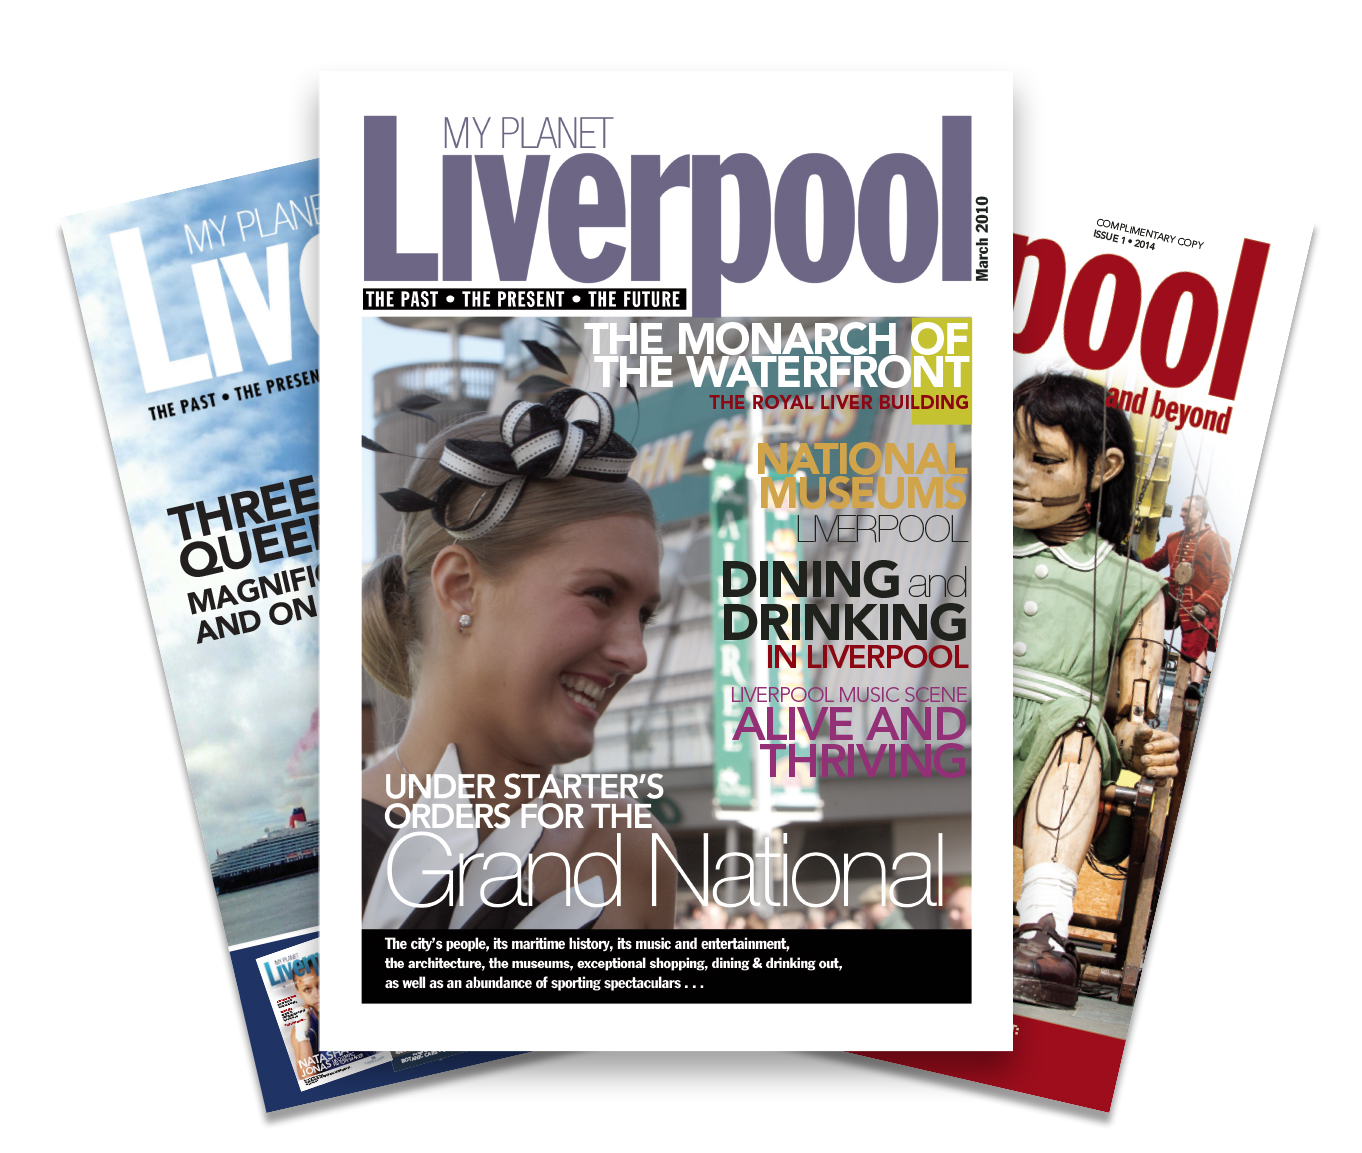 My Planet Liverpool Magazine